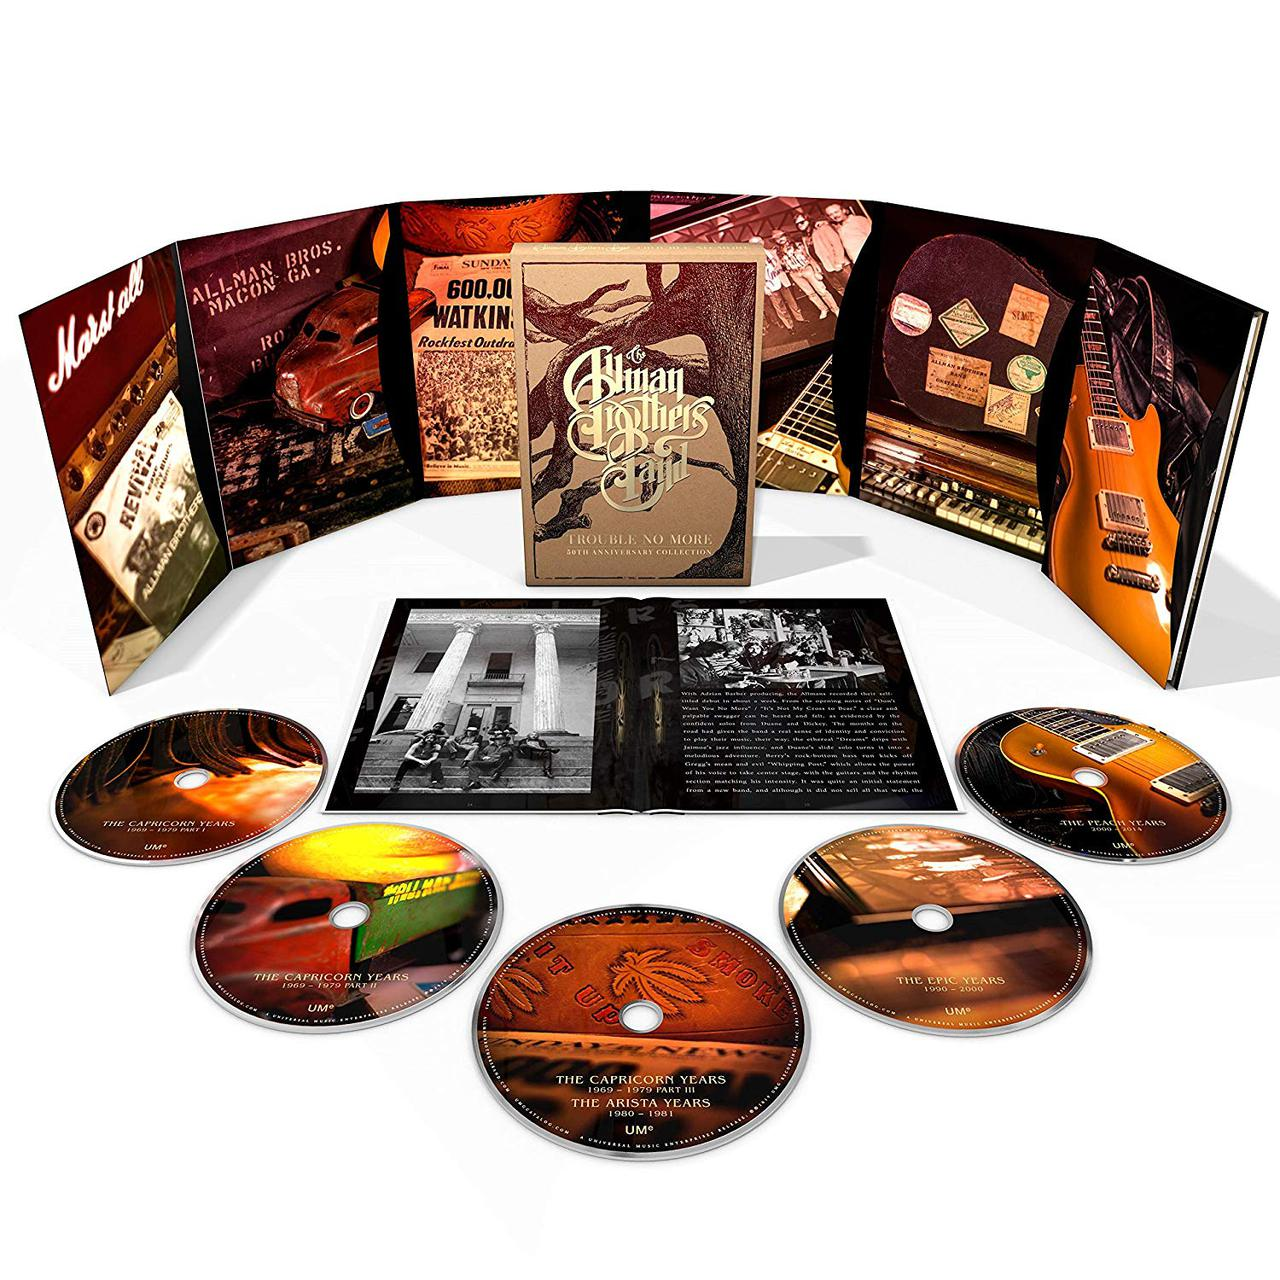 Trouble No More : 50th Anniversary Collection